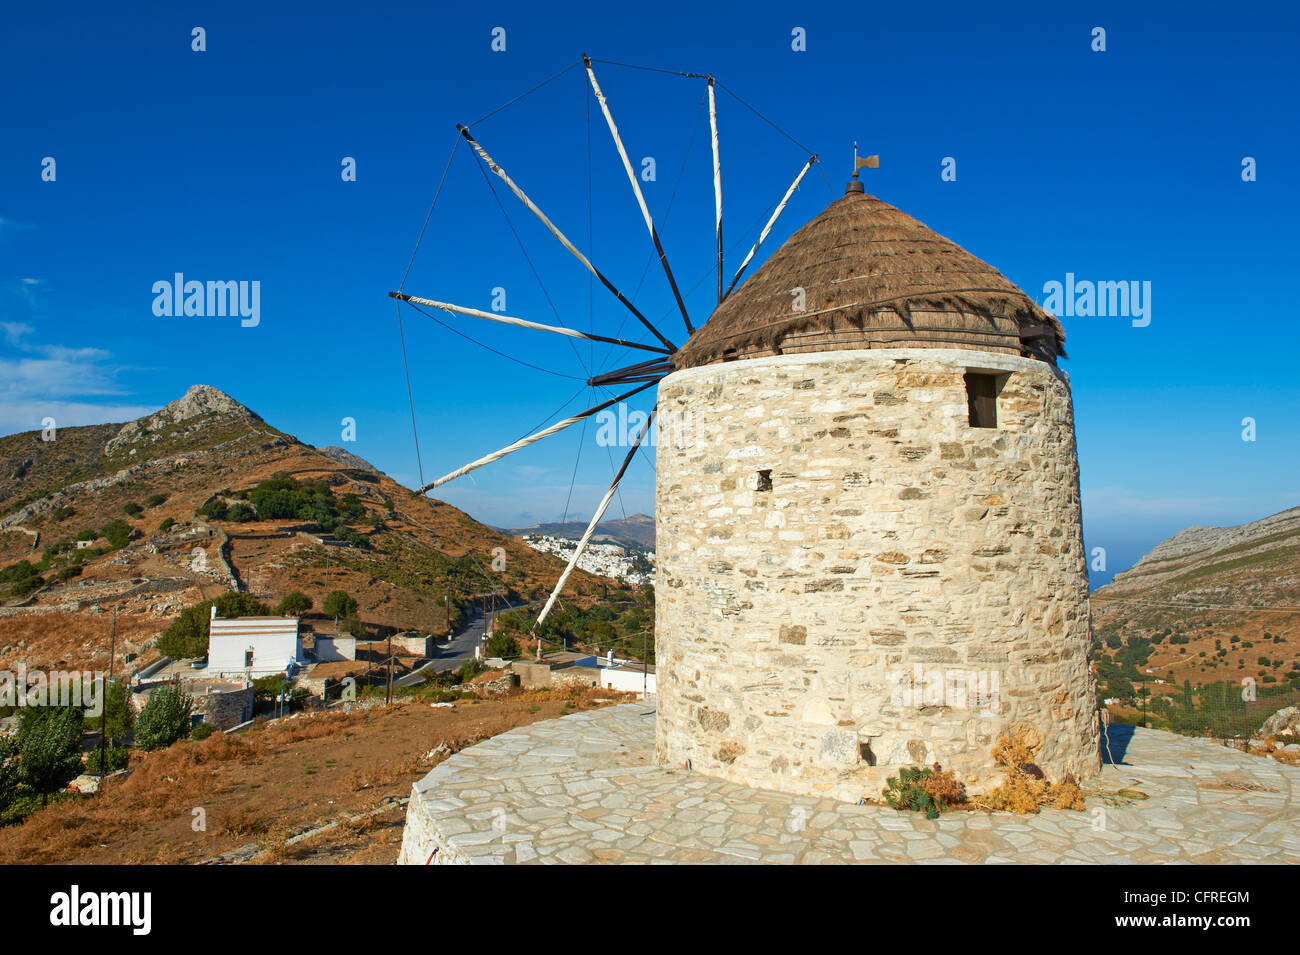 Windmill, Naxos, Cyclades Islands, Greek Islands, Greece, Europe - Stock Image